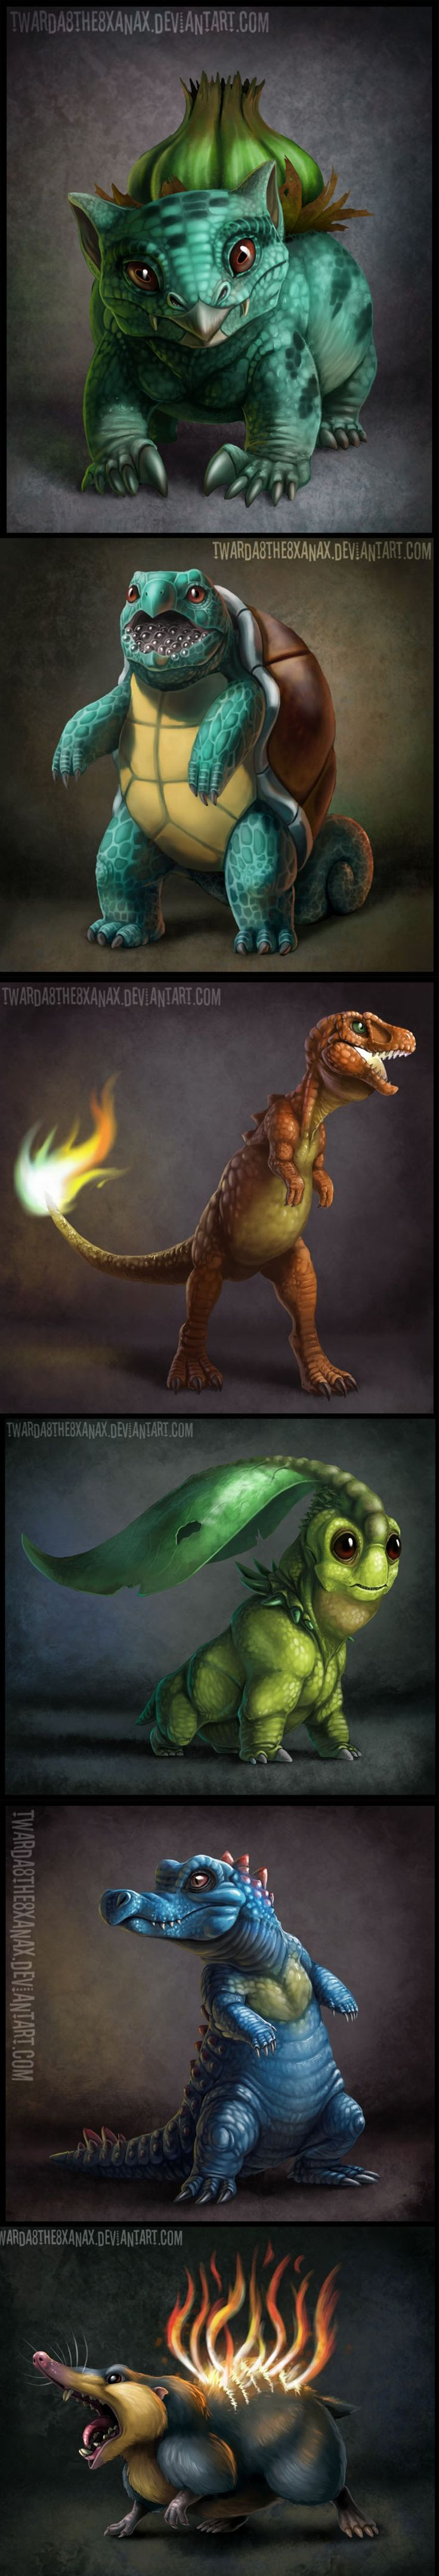 Realistic Pokemon - these actually look cool. A lot of the ones I have seen just look plain creepy.